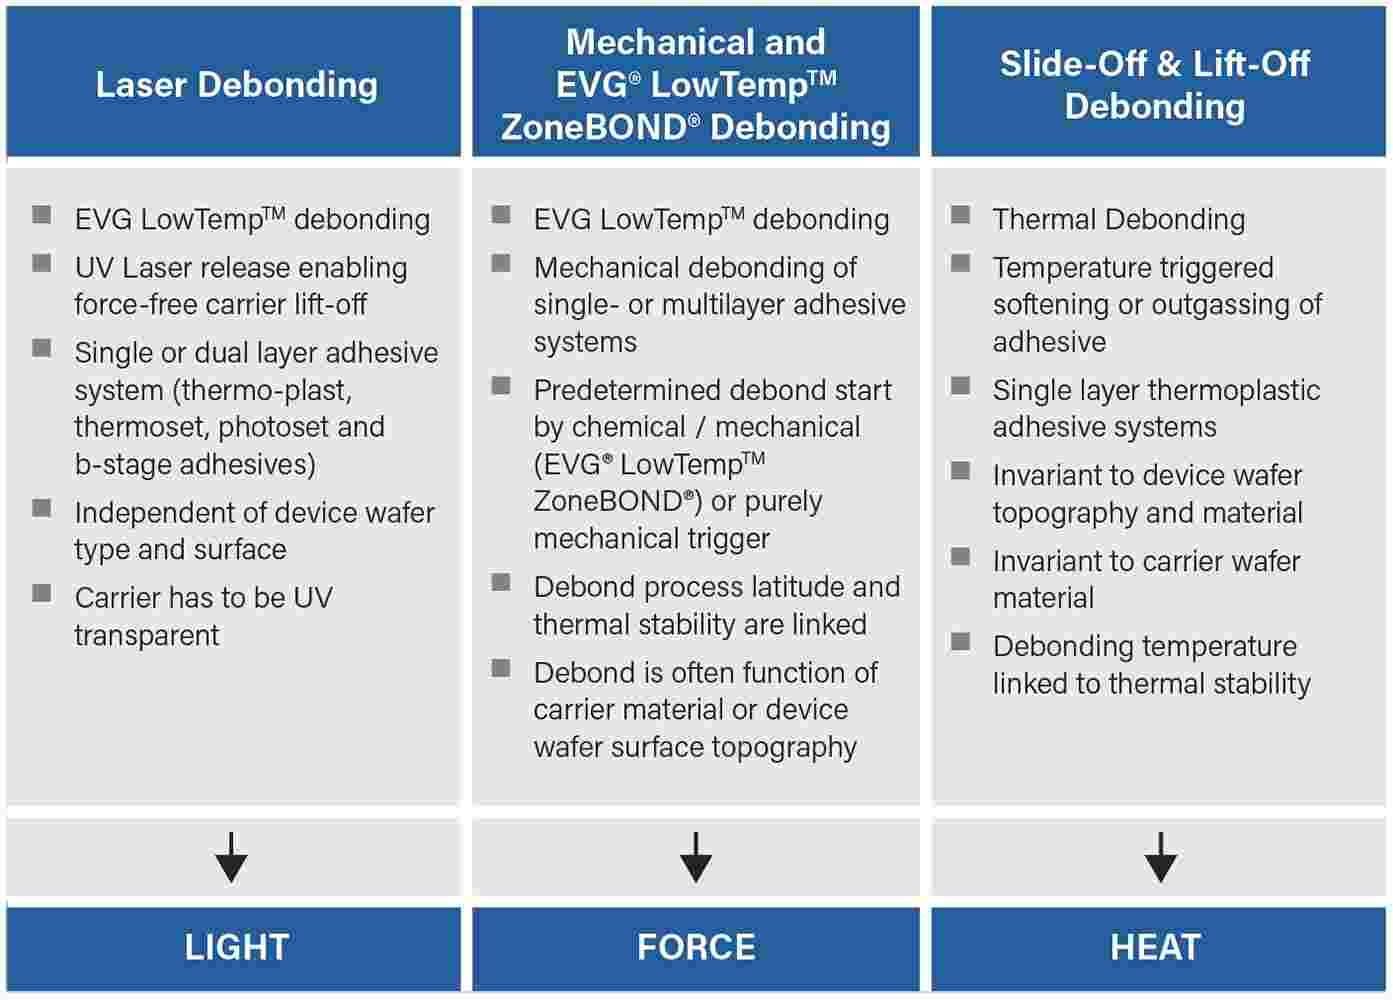 EVG's supported debonding technologies.